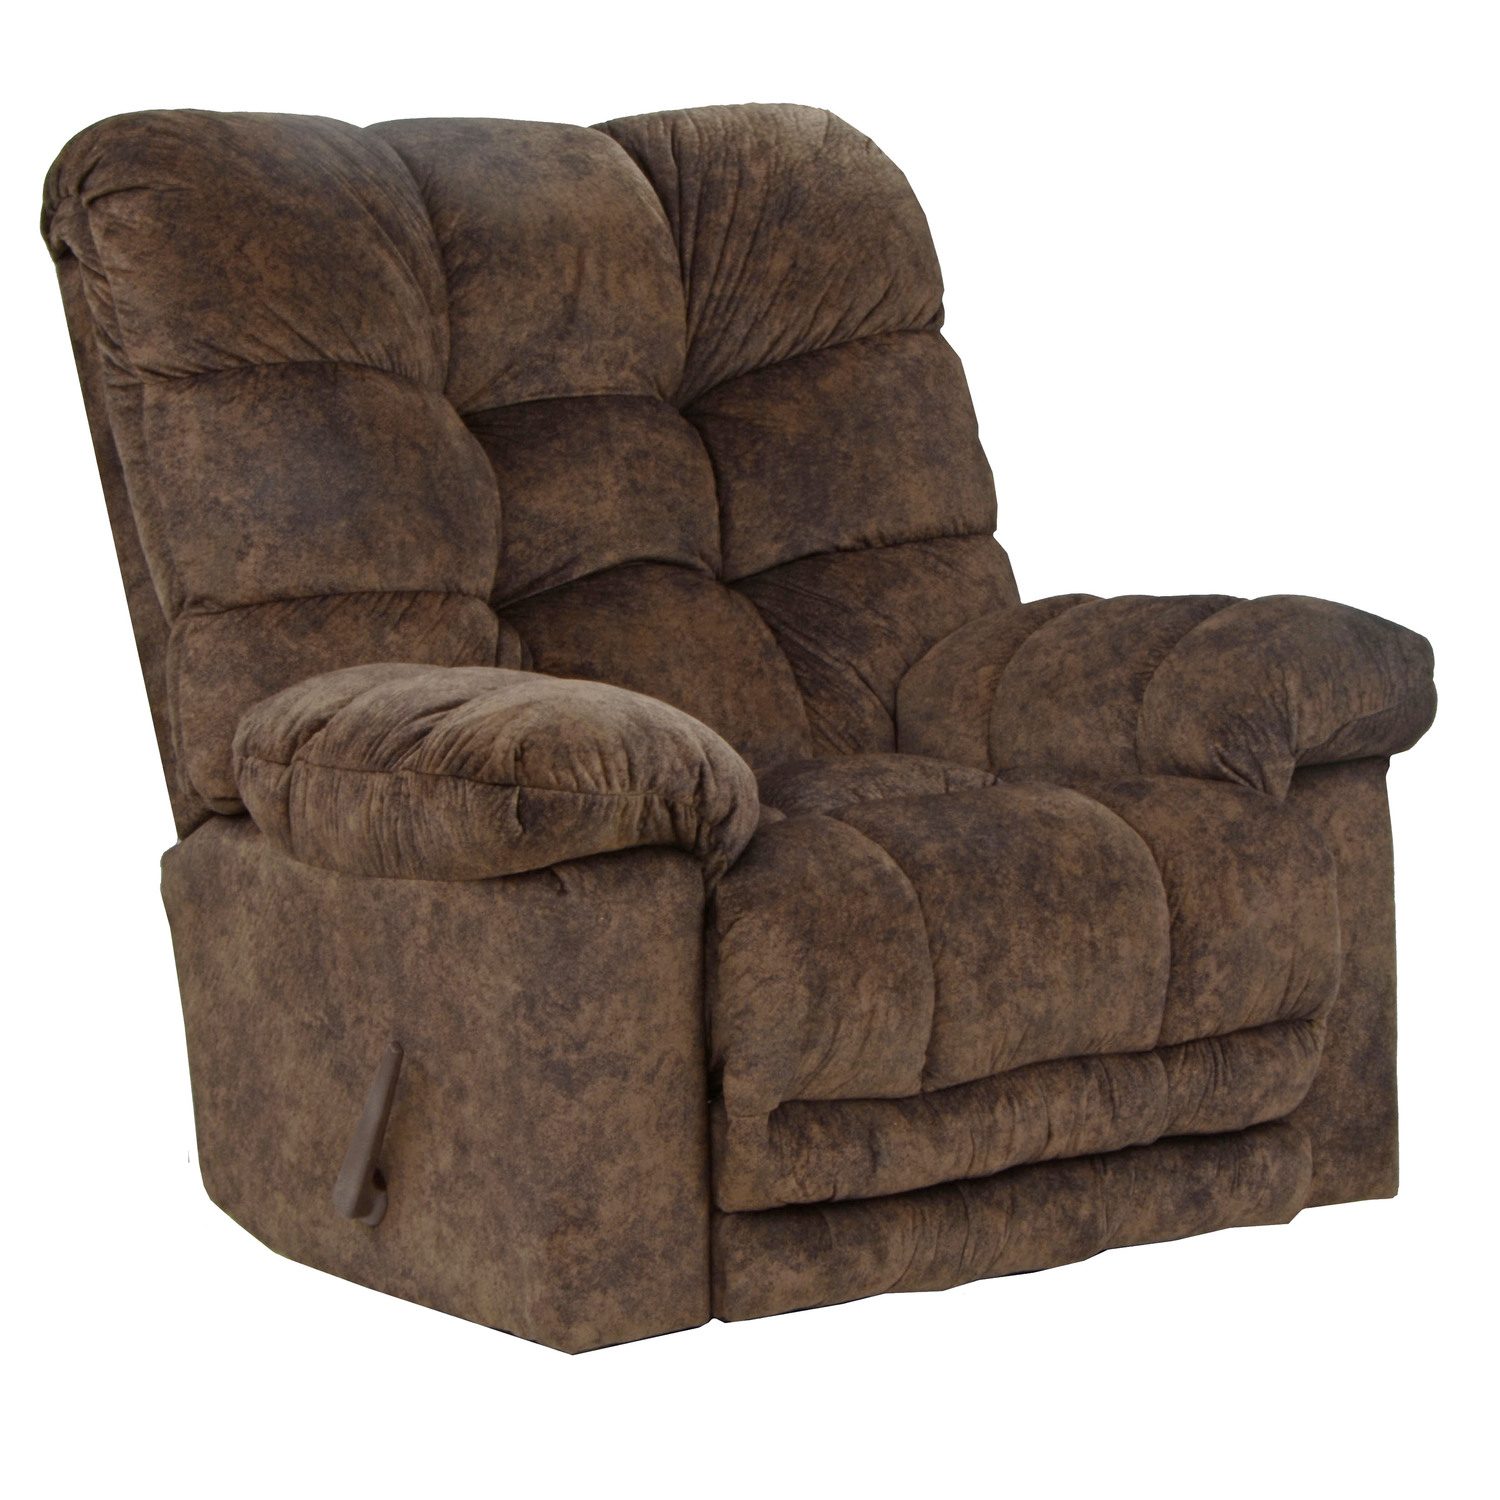 Catnapper Chair Catnapper Bronson Recliner By Oj Commerce 649 00